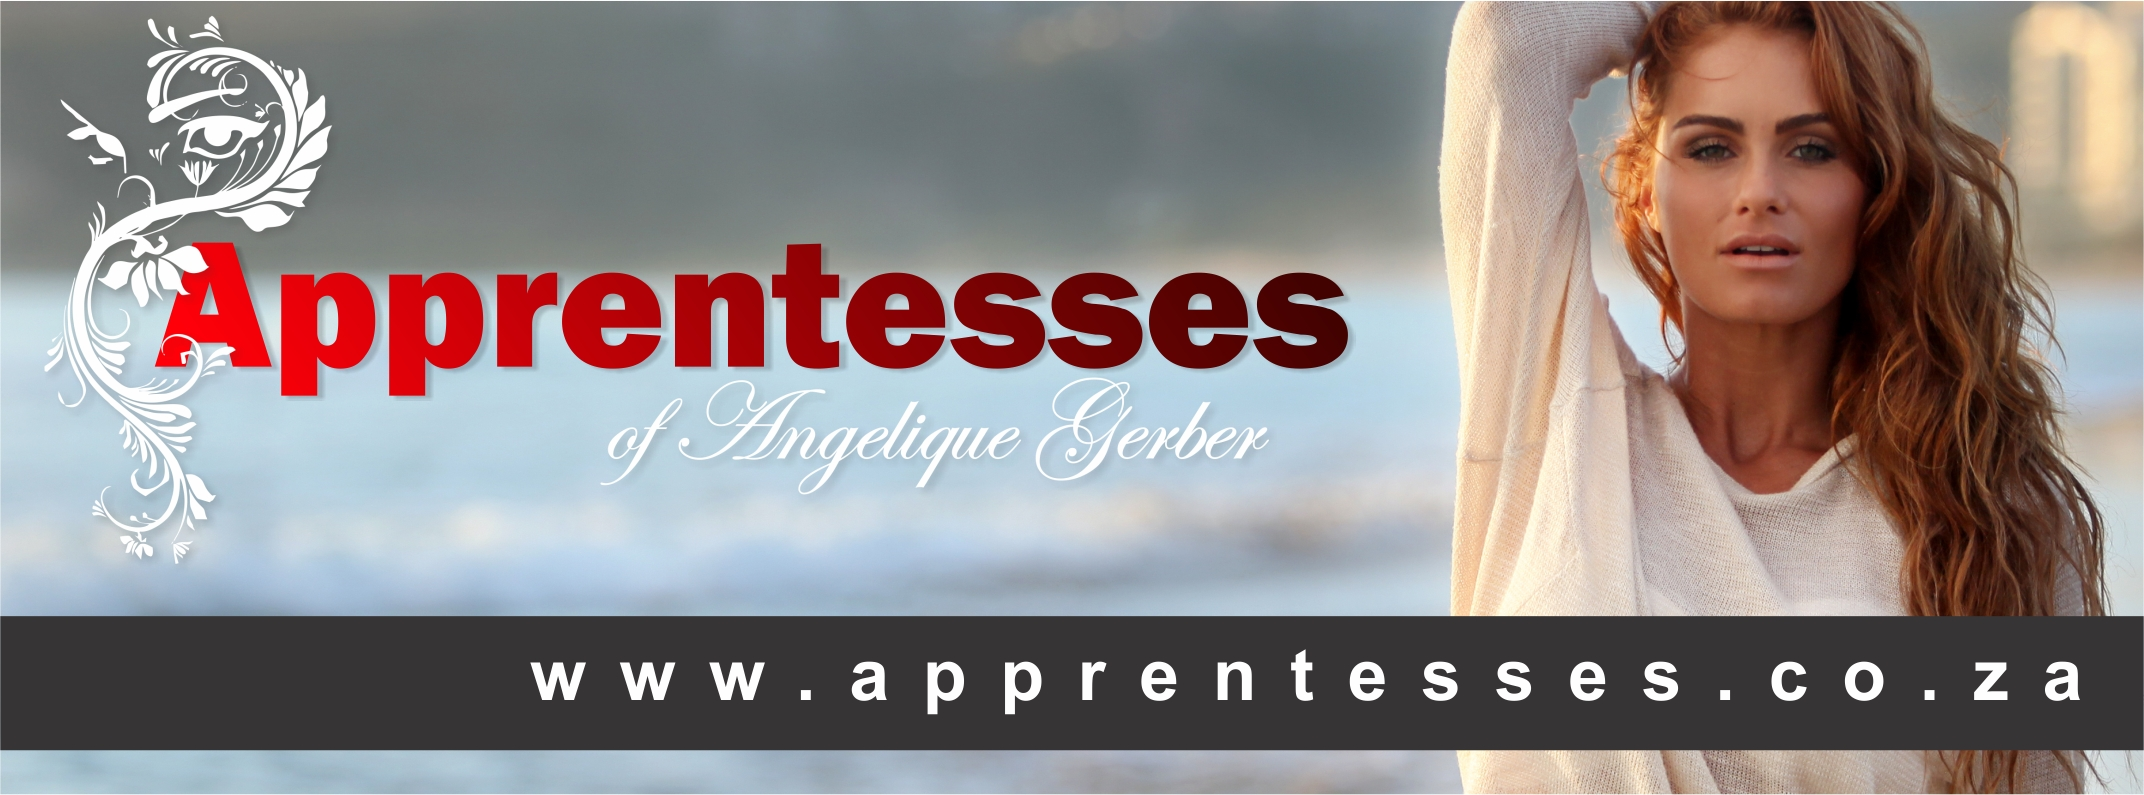 Peri-Peri-Creative-Apprentesses-of-Angelique-Gerber Facbook banner